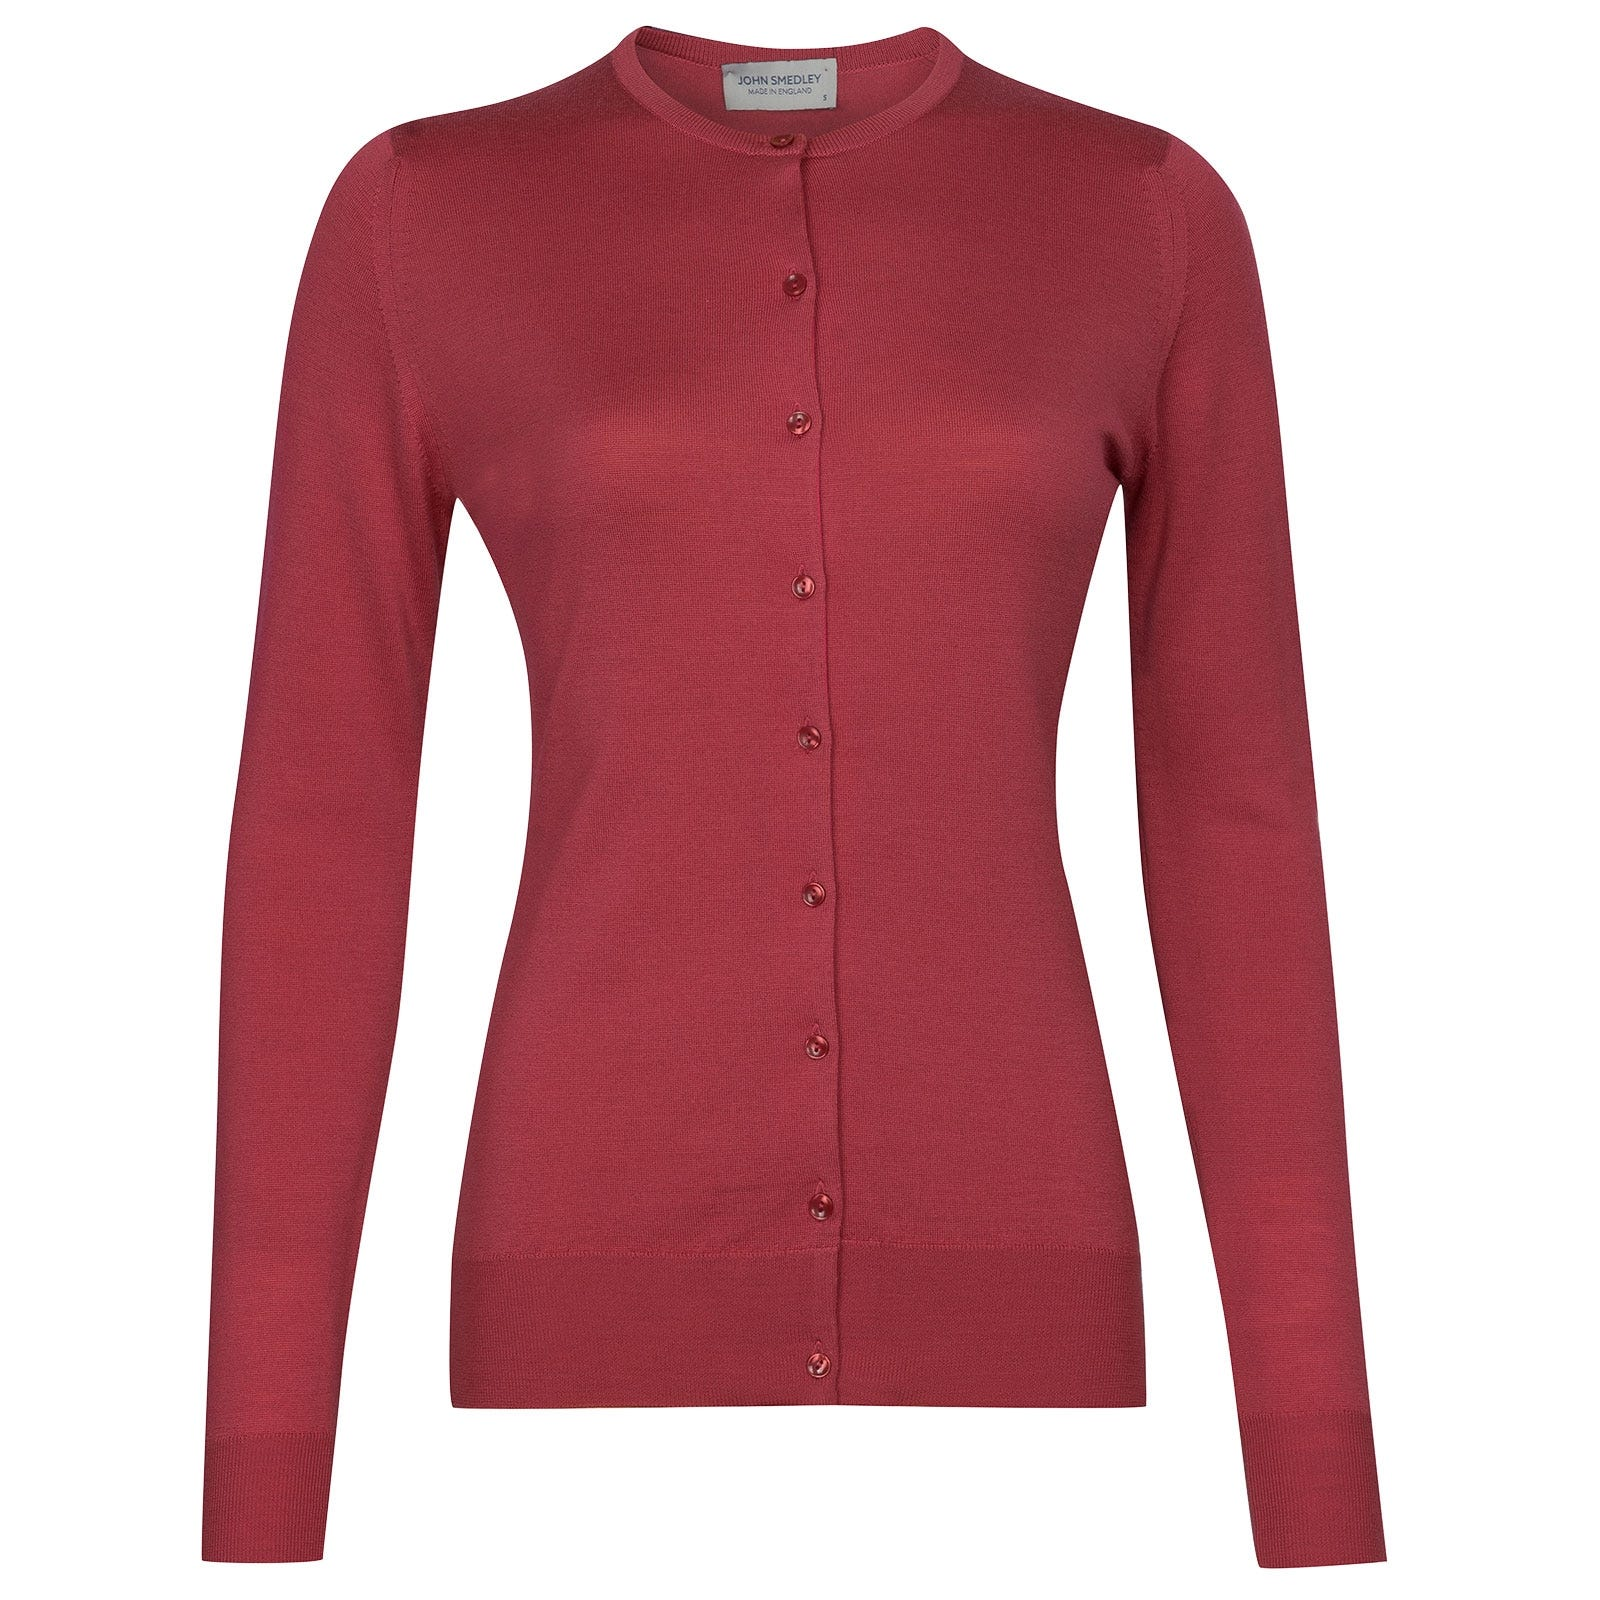 John Smedley Buttercup Cardigan in Atomic Cerise-XL